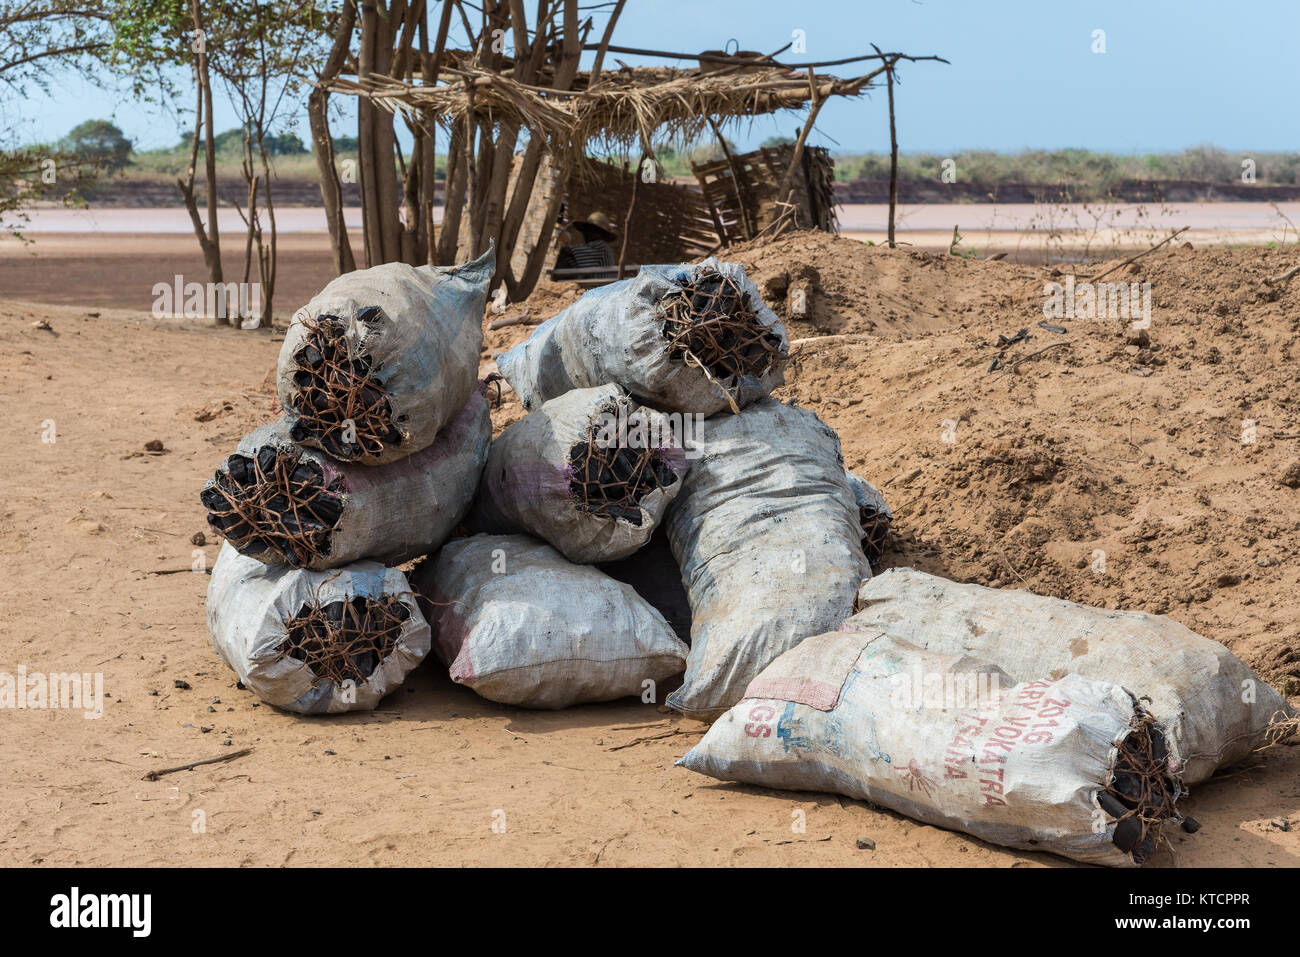 Sacks full of charcoal for sale. It's the main source of cooking fuel in rural Madagascar, Africa. - Stock Image